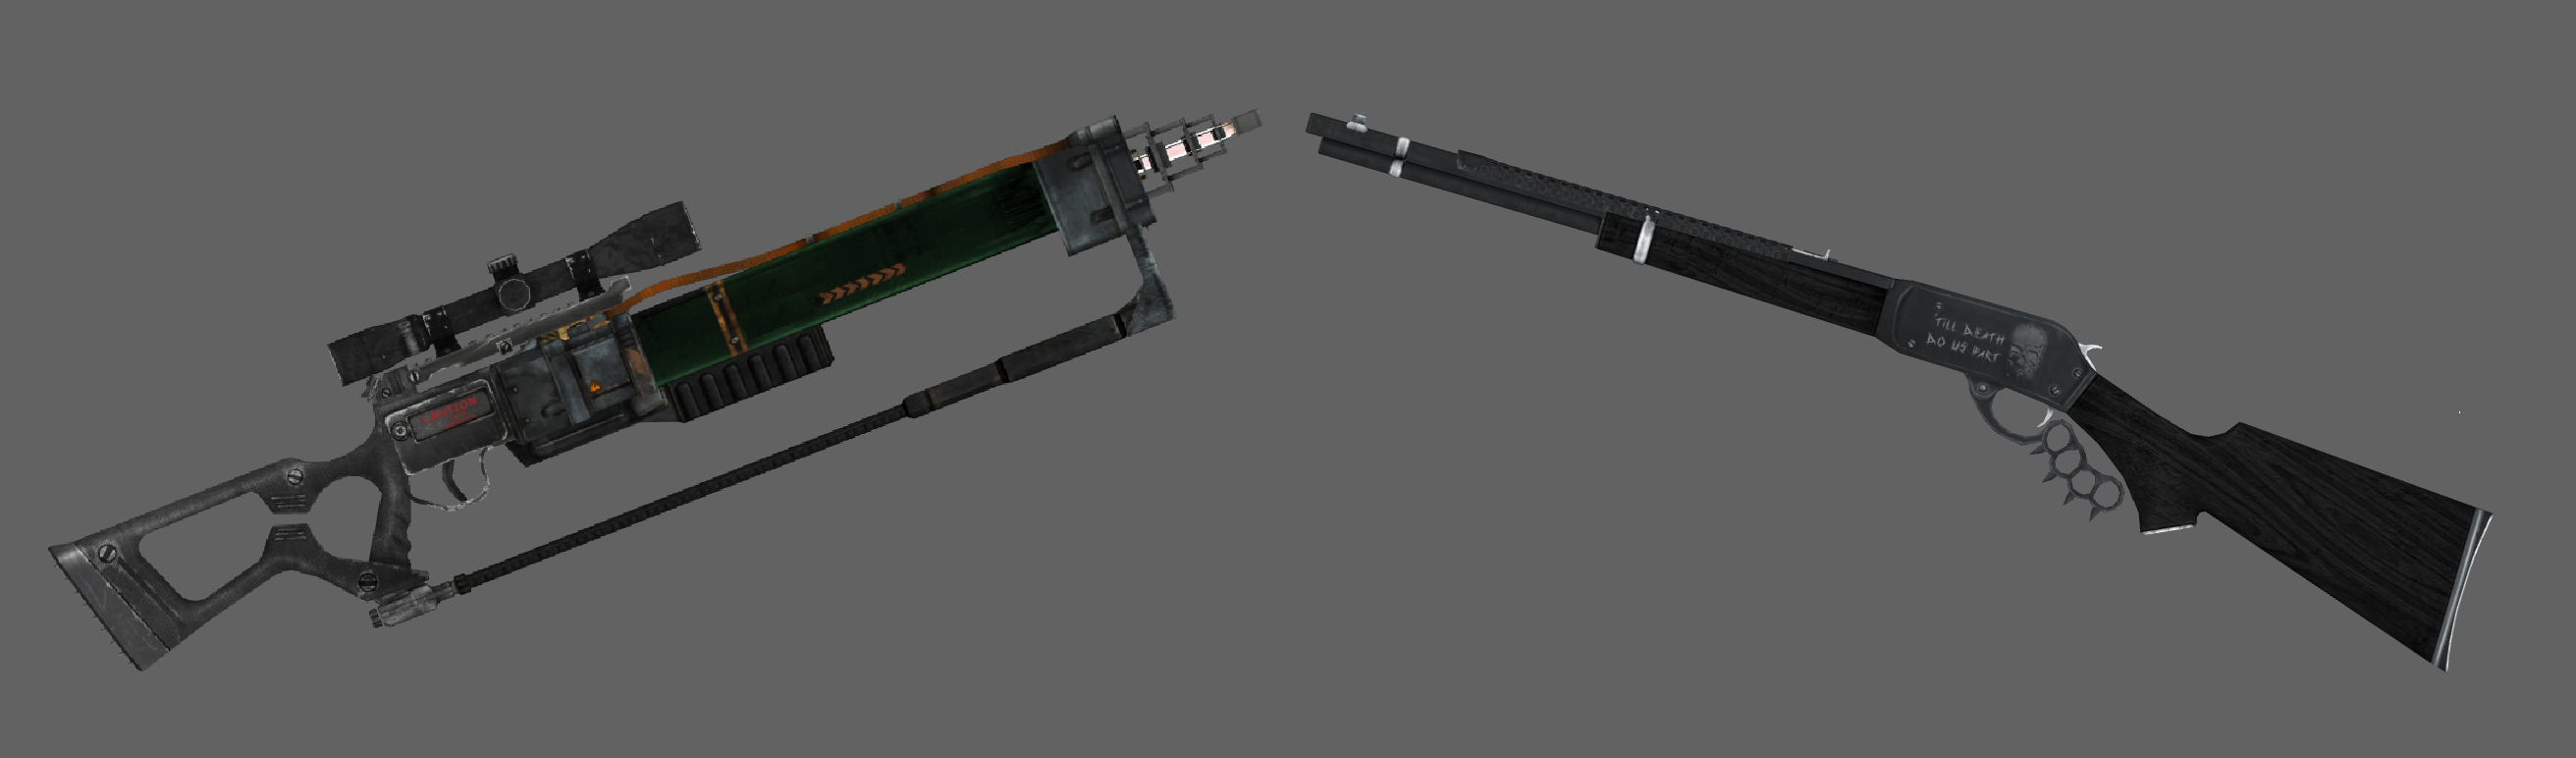 Upcoming mod Weapns for Fallout New Vegas